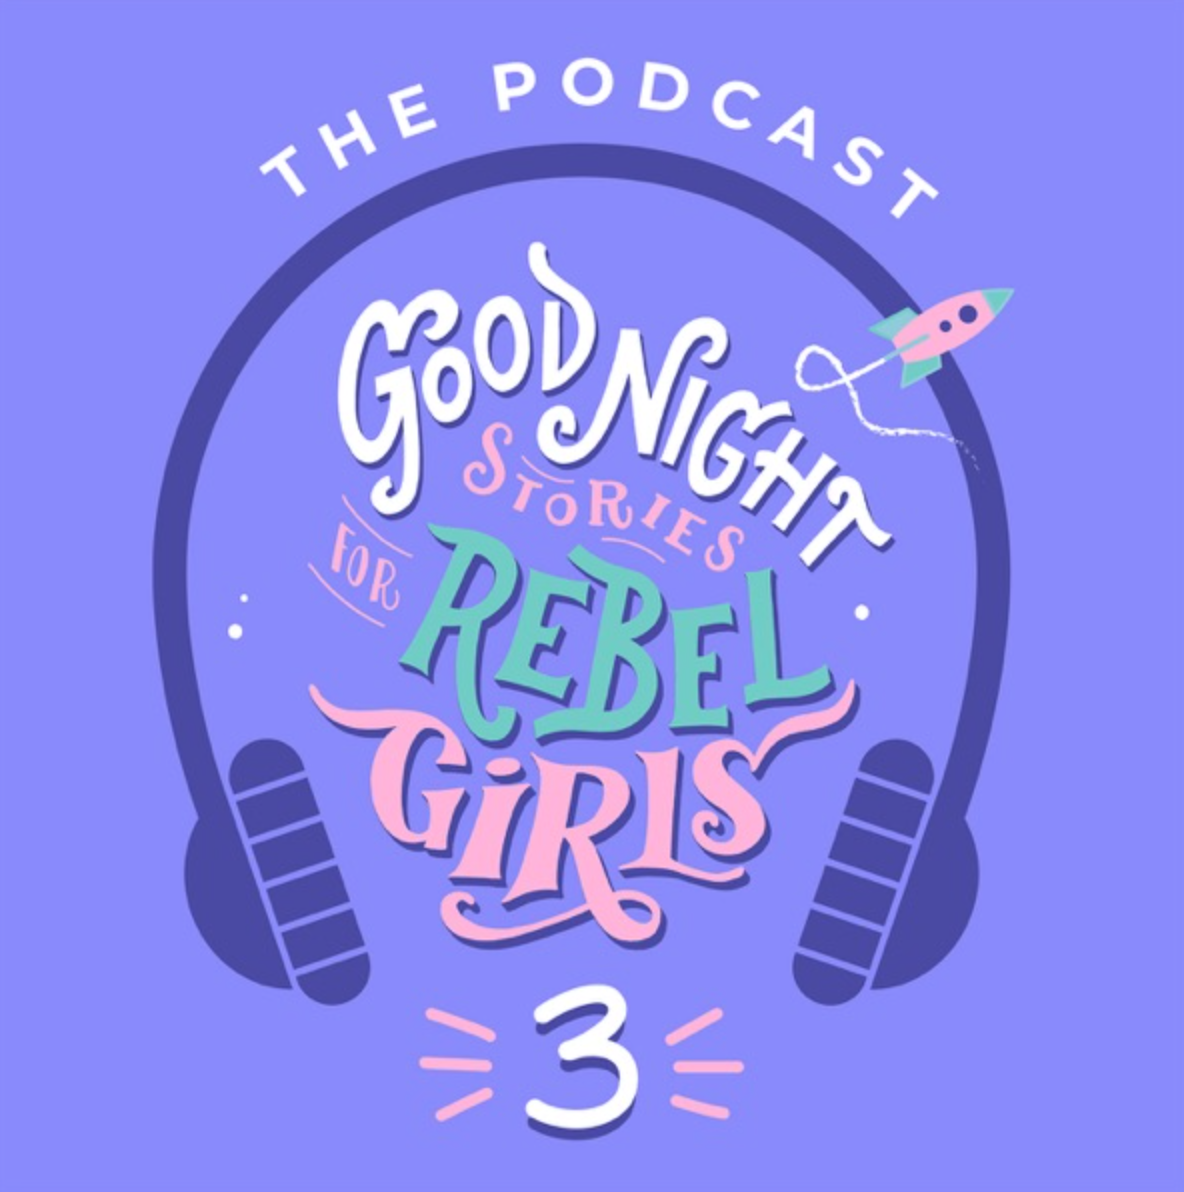 Check out the new season of the Good Night Stories for Rebel Girls podcast